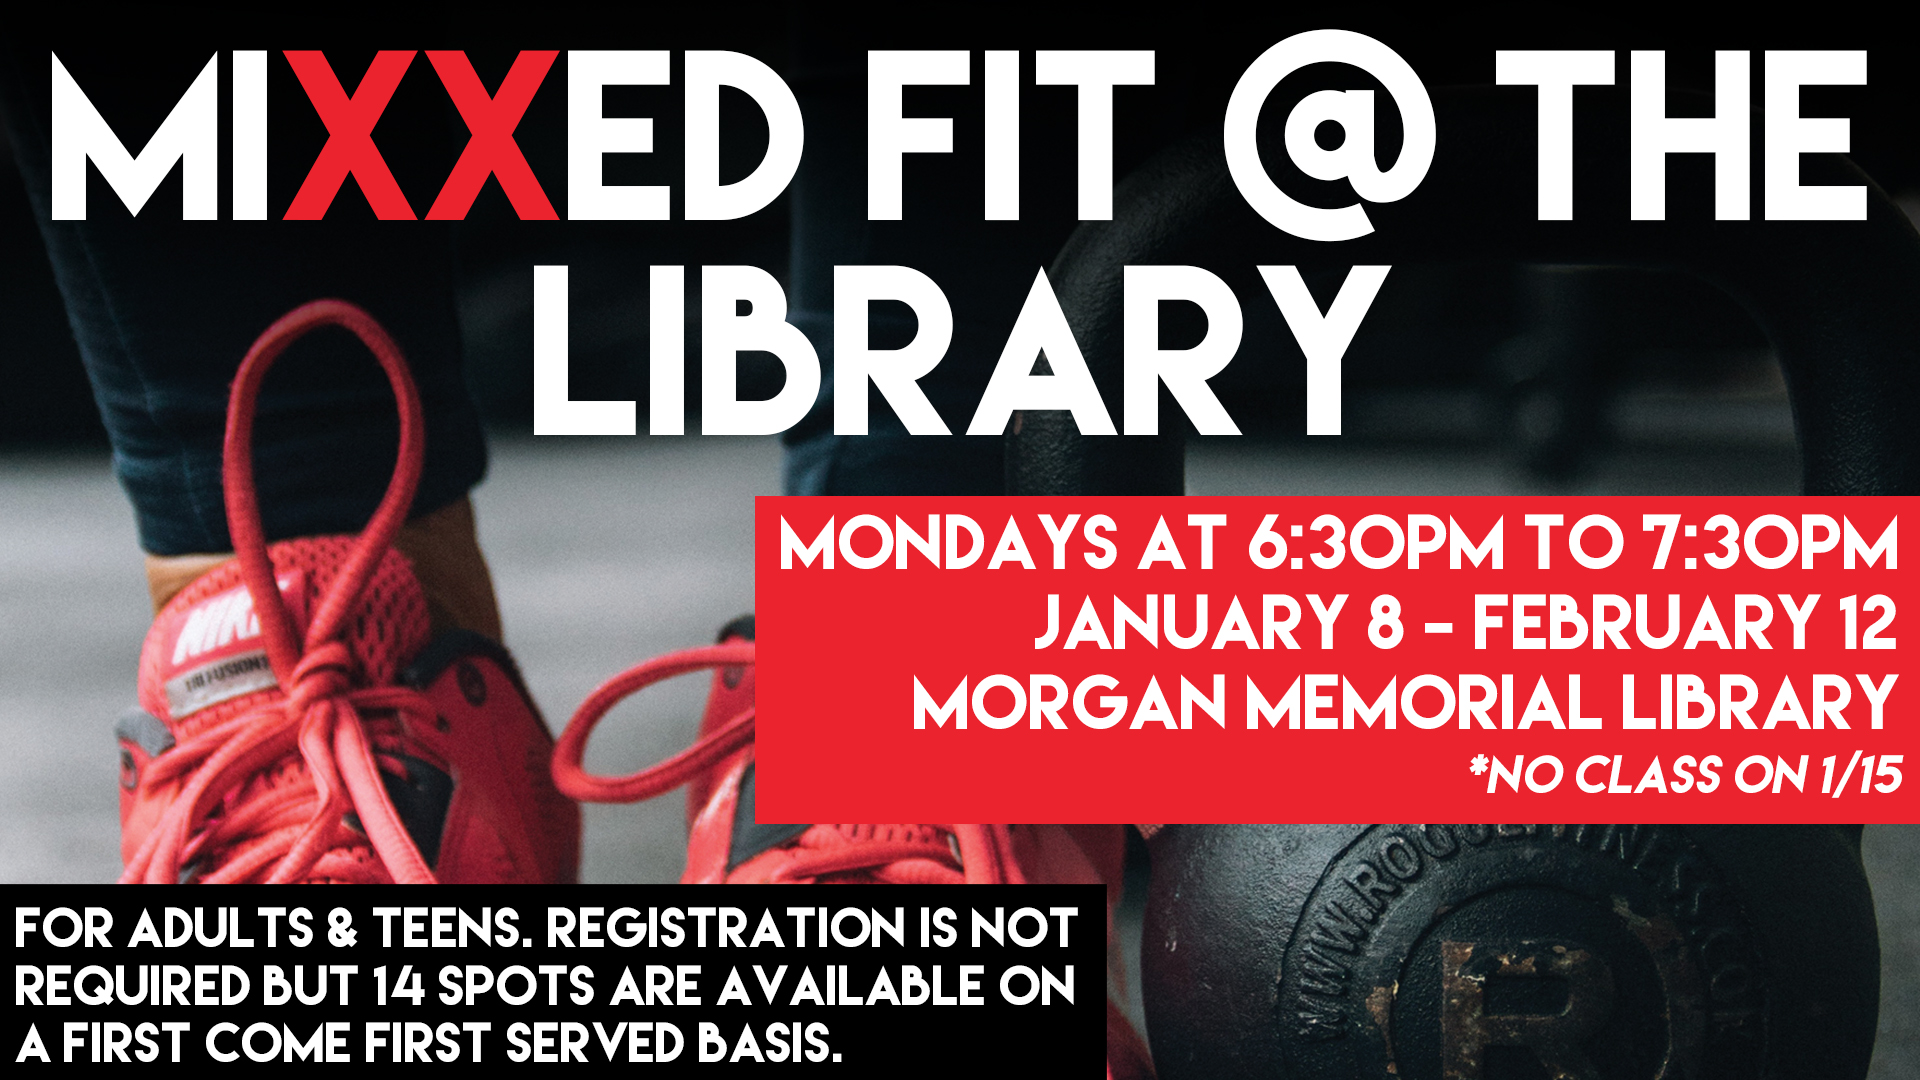 Mixxed Fit @ the Library